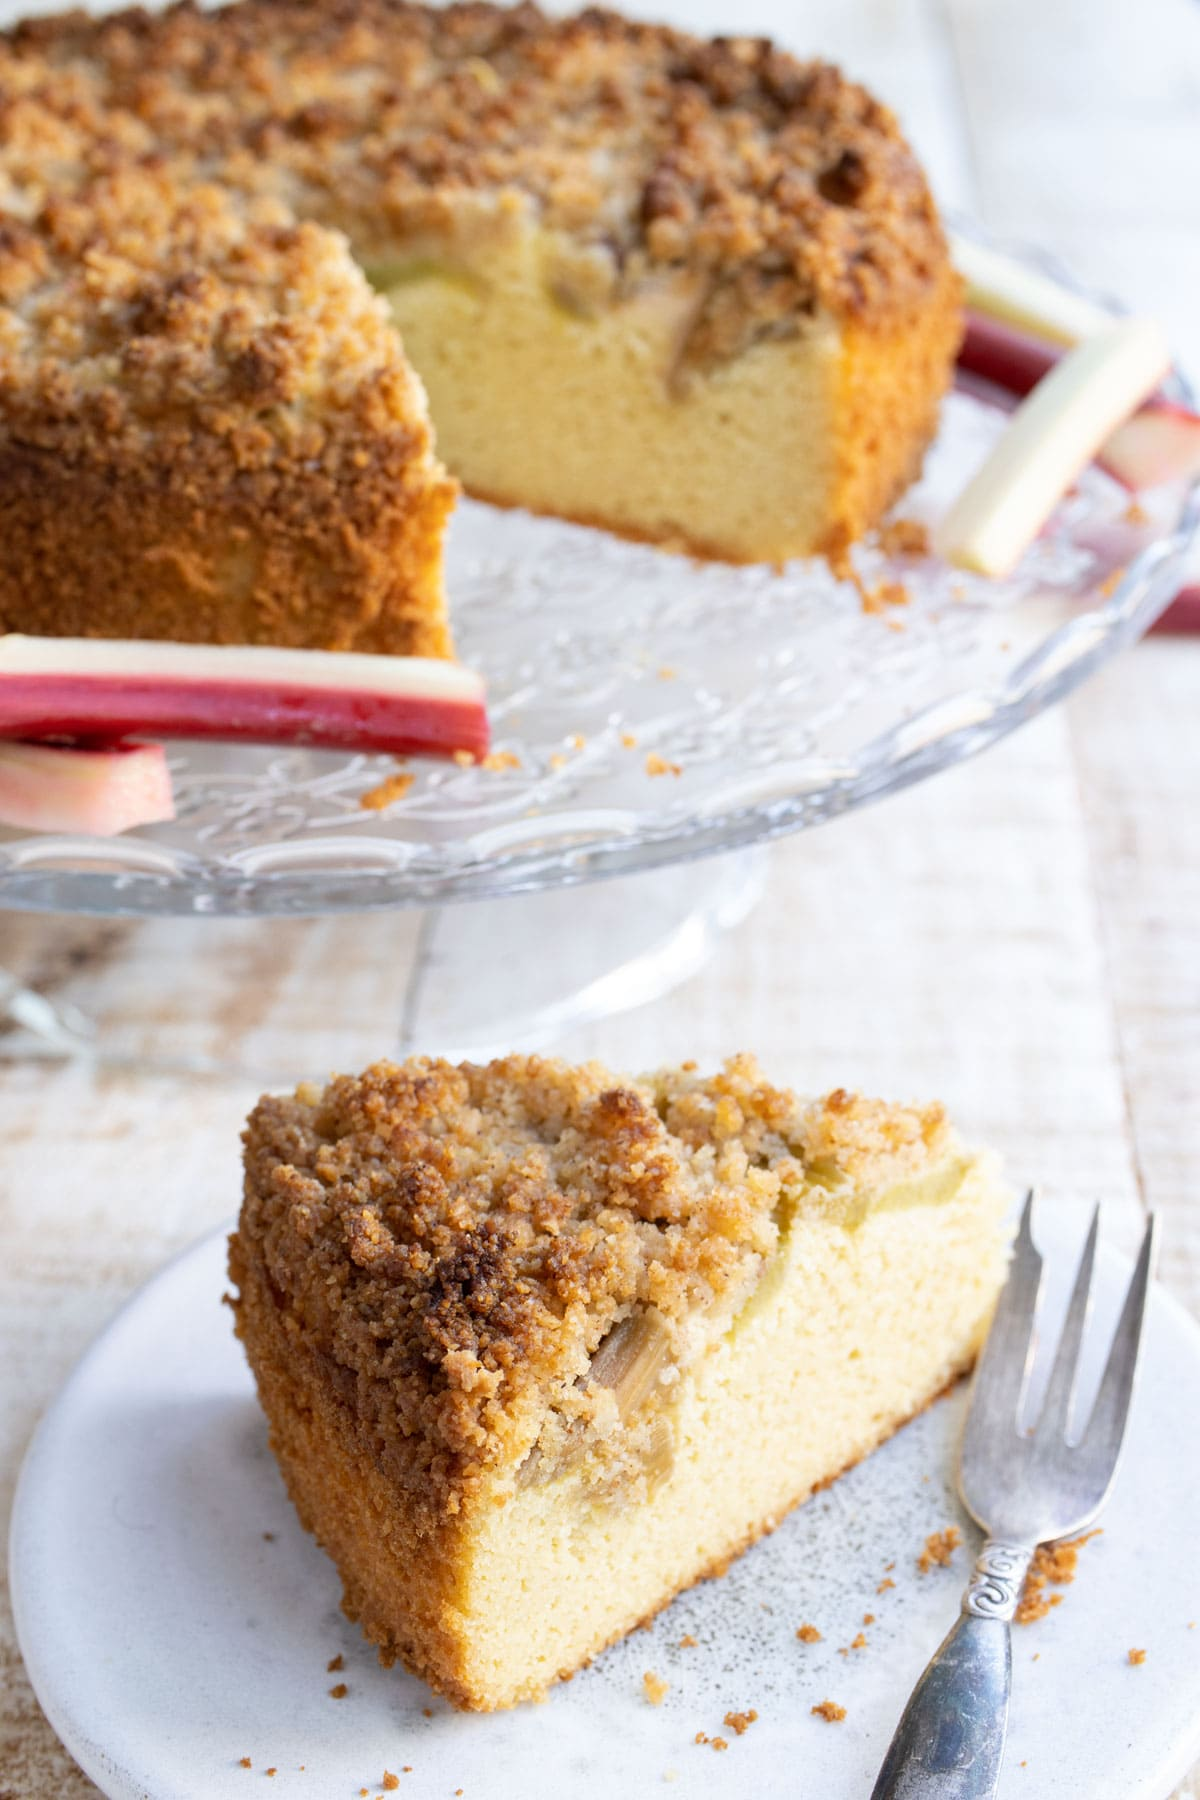 a slice of rhubarb cake with streusel on a plate with a fork and the cake on a cake stand